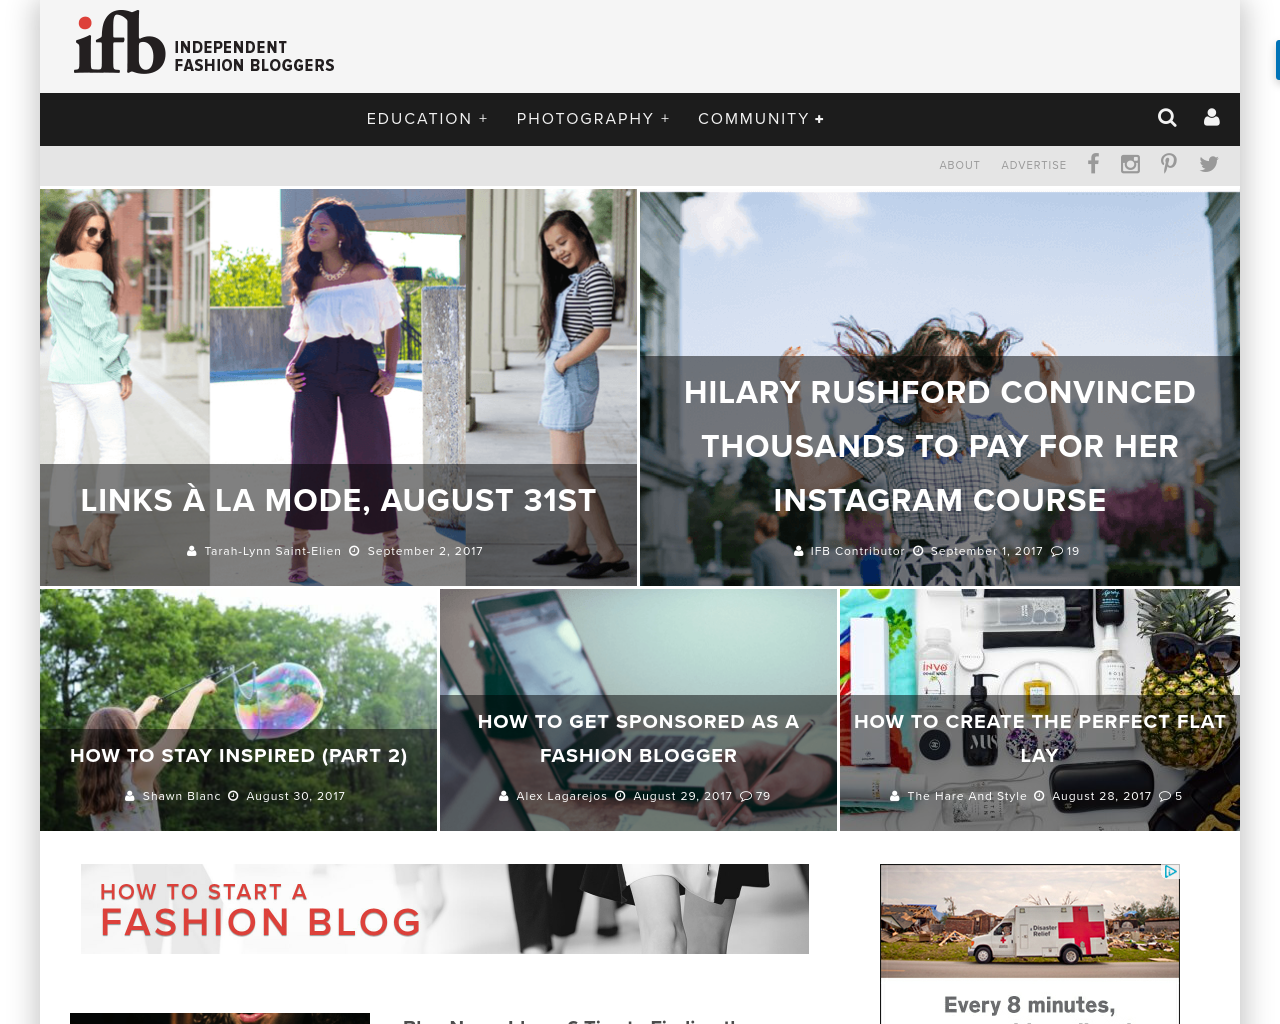 Independent-Fashion-Bloggers-Advertising-Reviews-Pricing